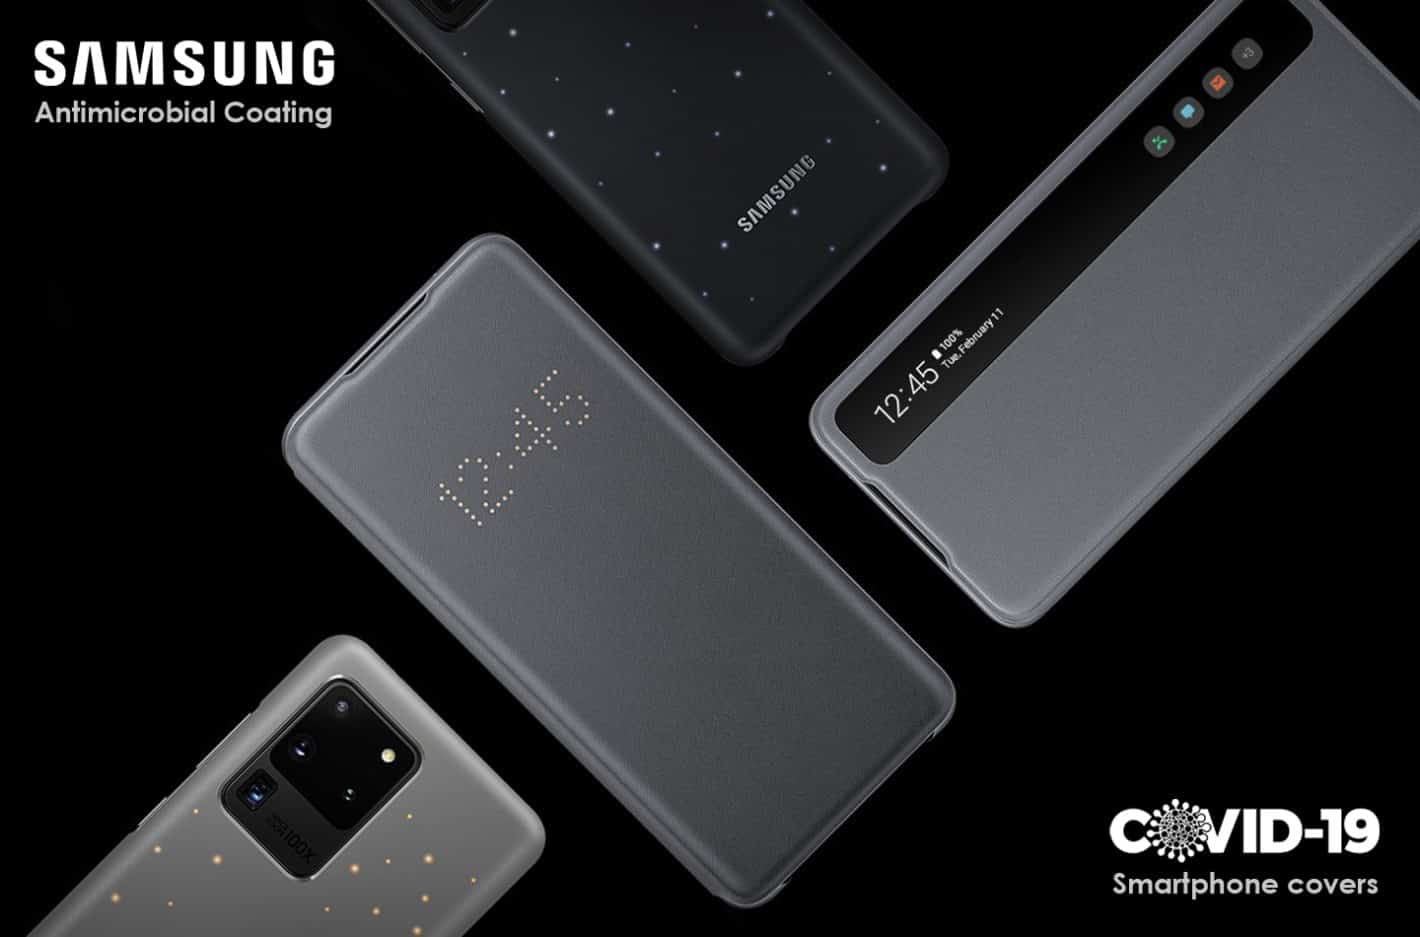 Samsung antimicrobial coating cases patent